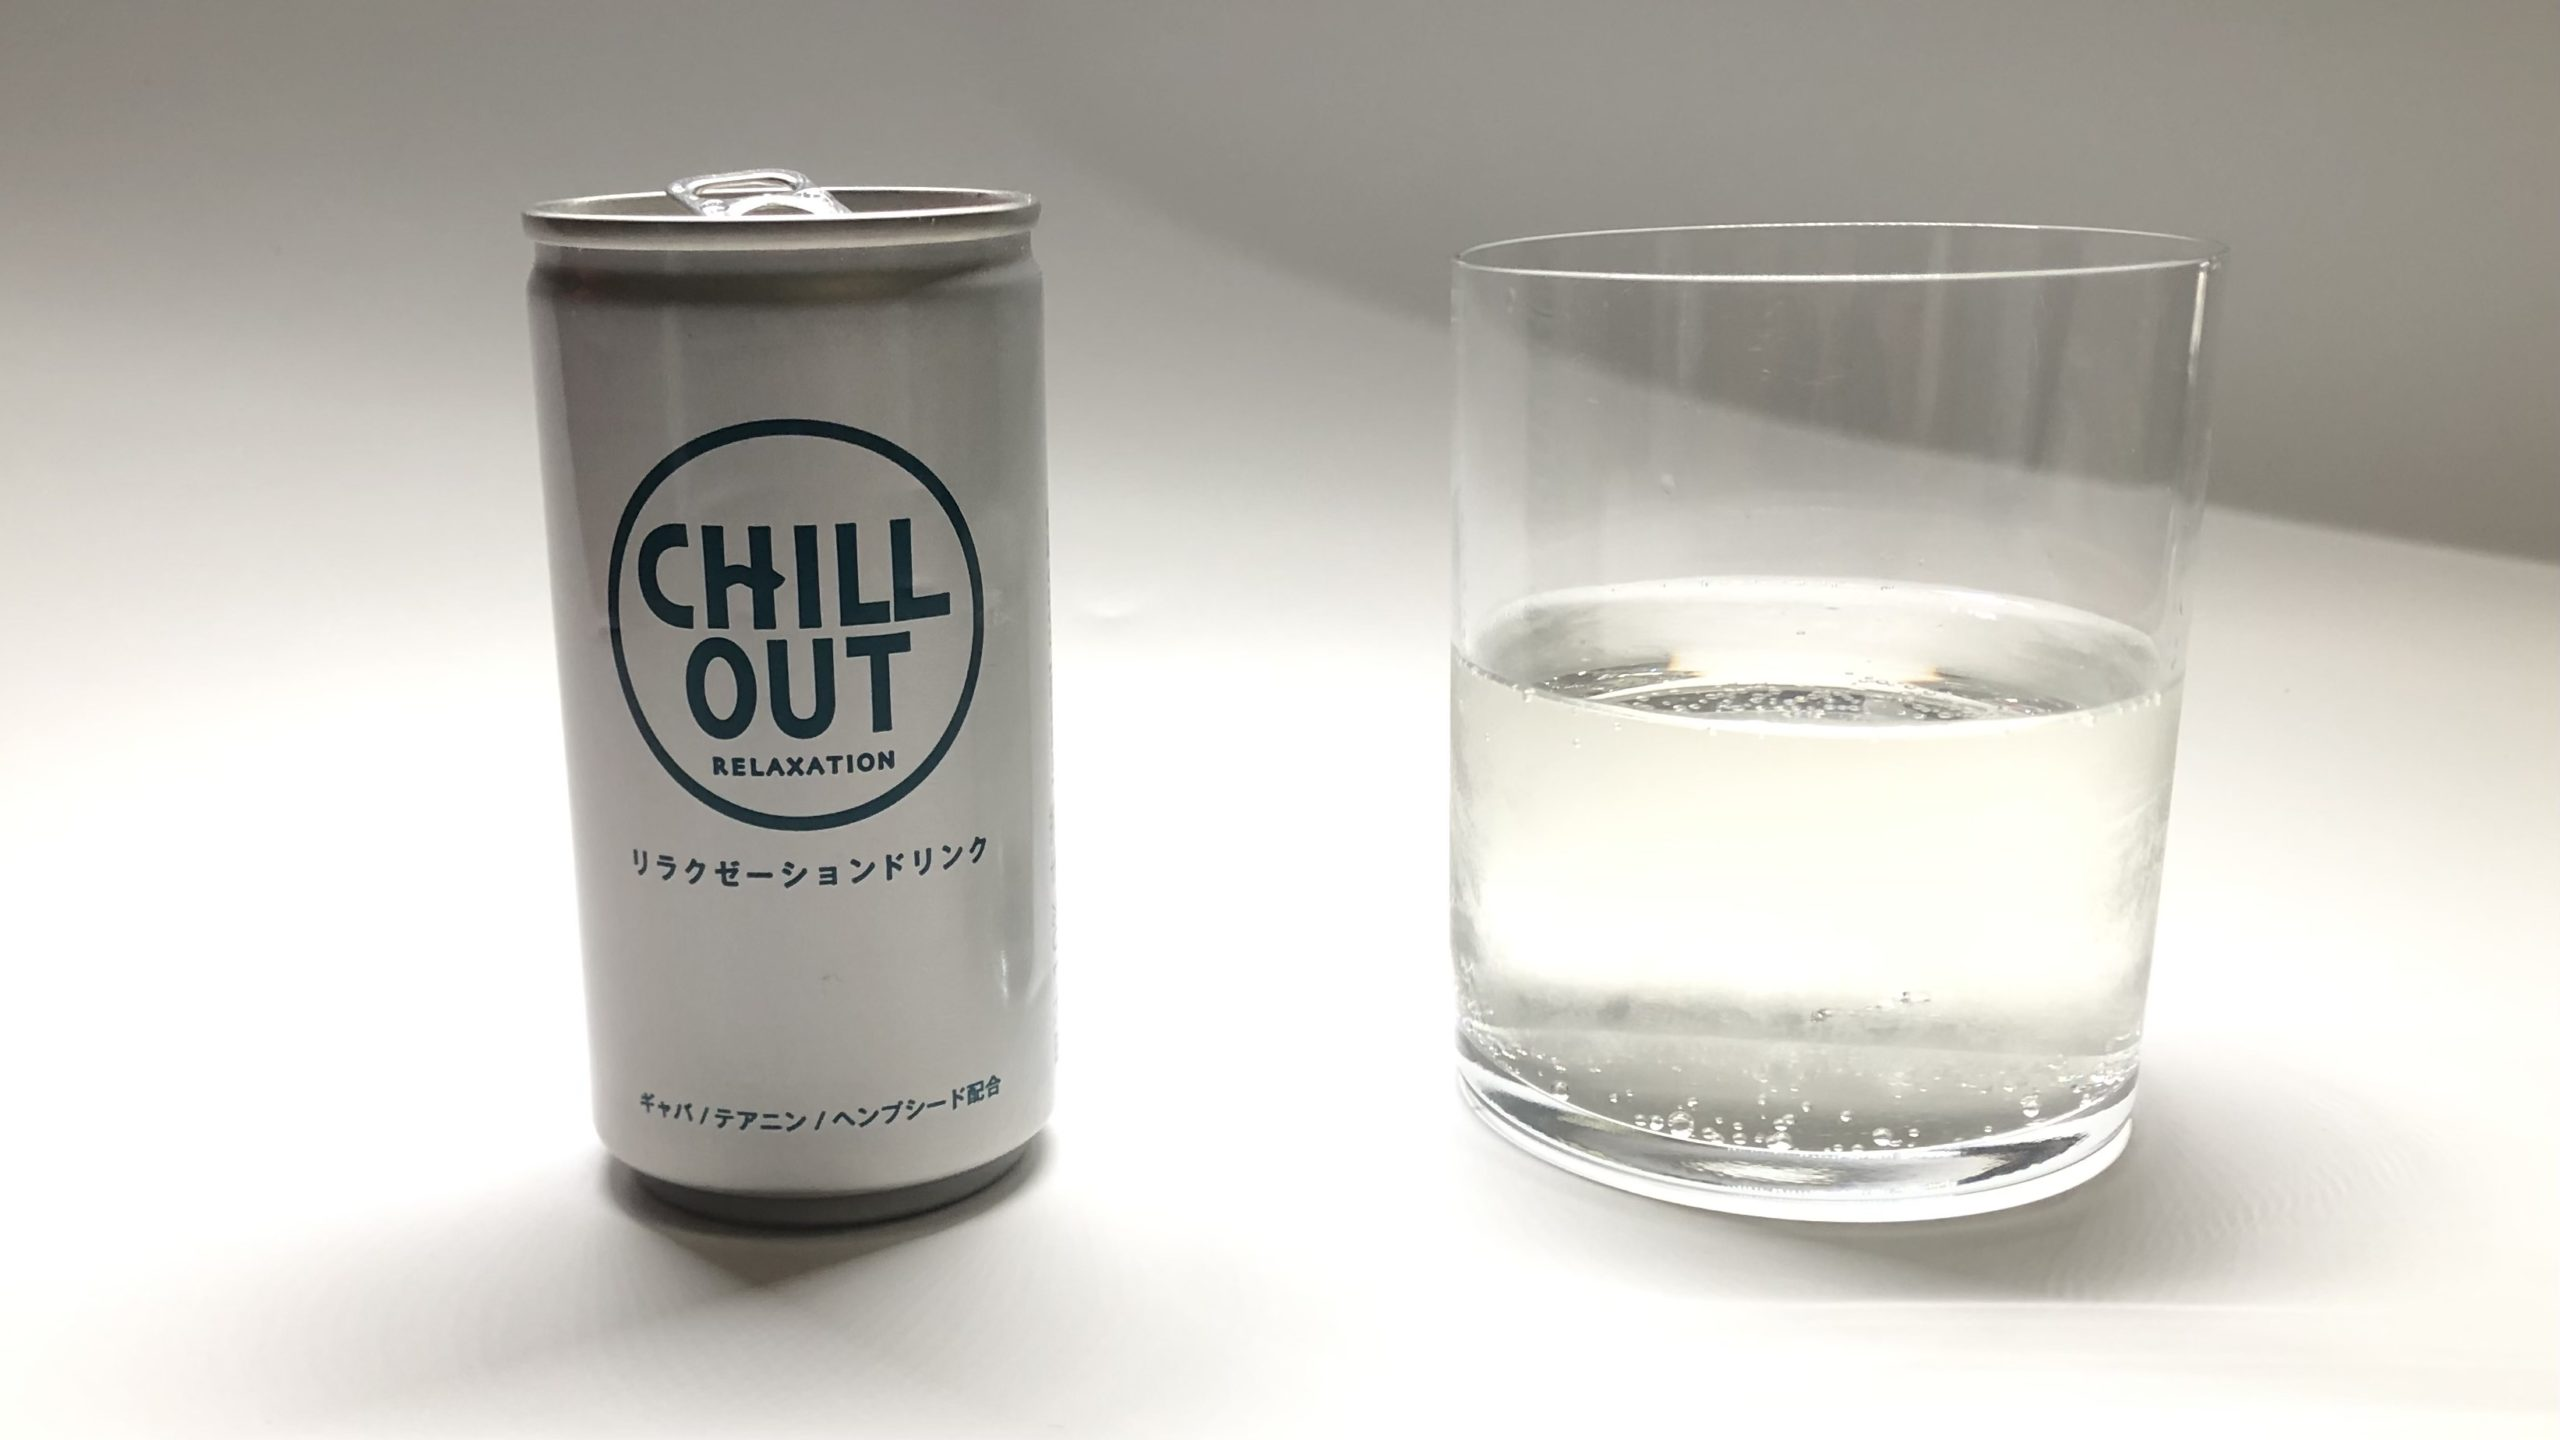 CHILL OUTを実際に飲む